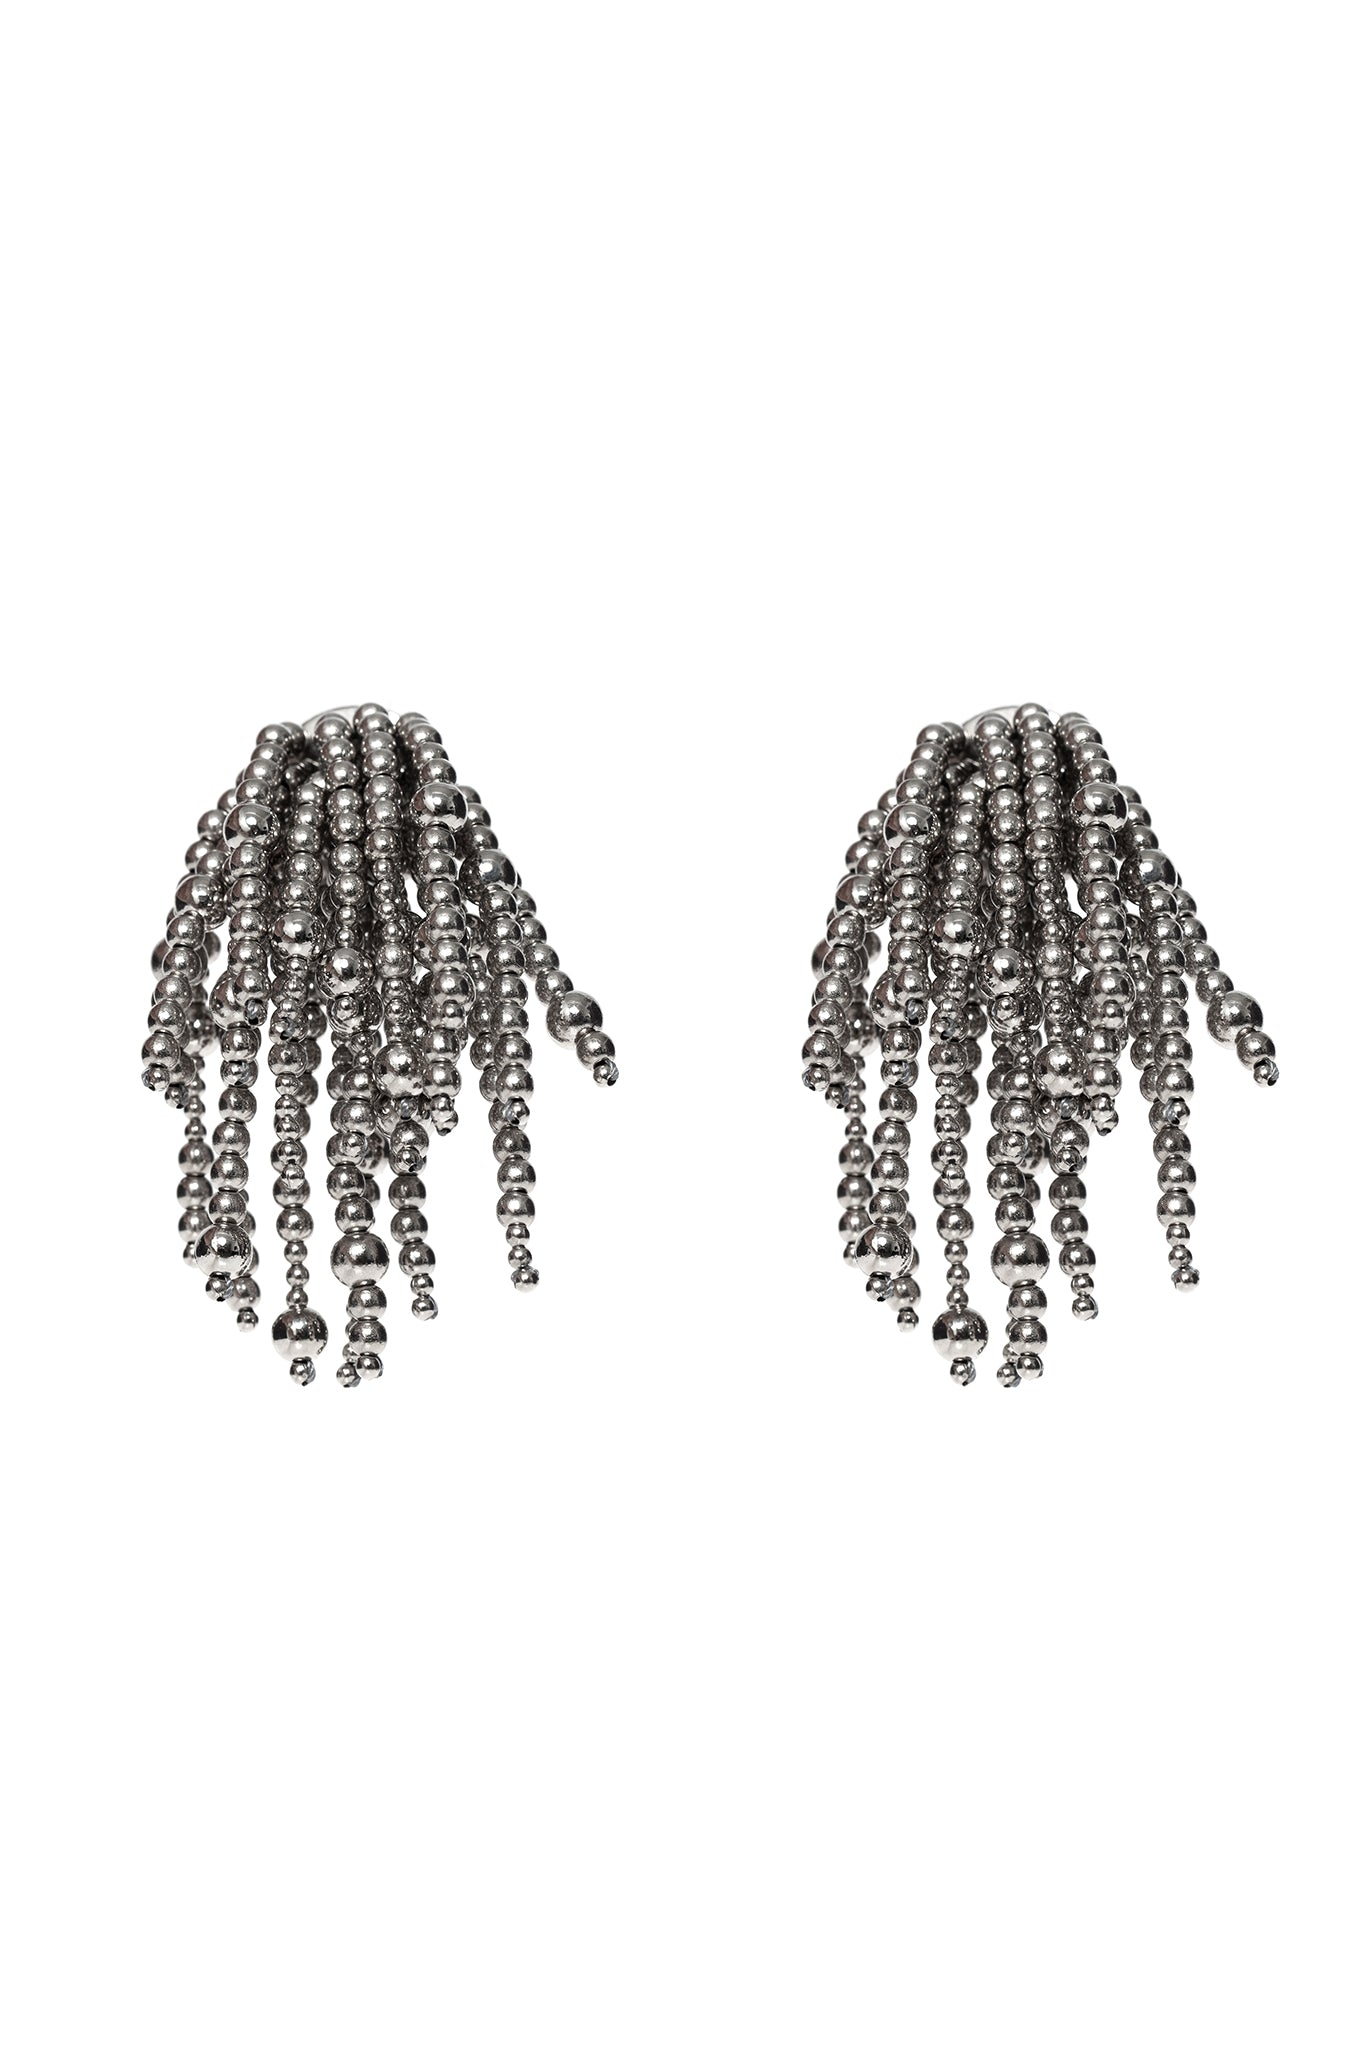 NICKEL URCHIN EARRINGS